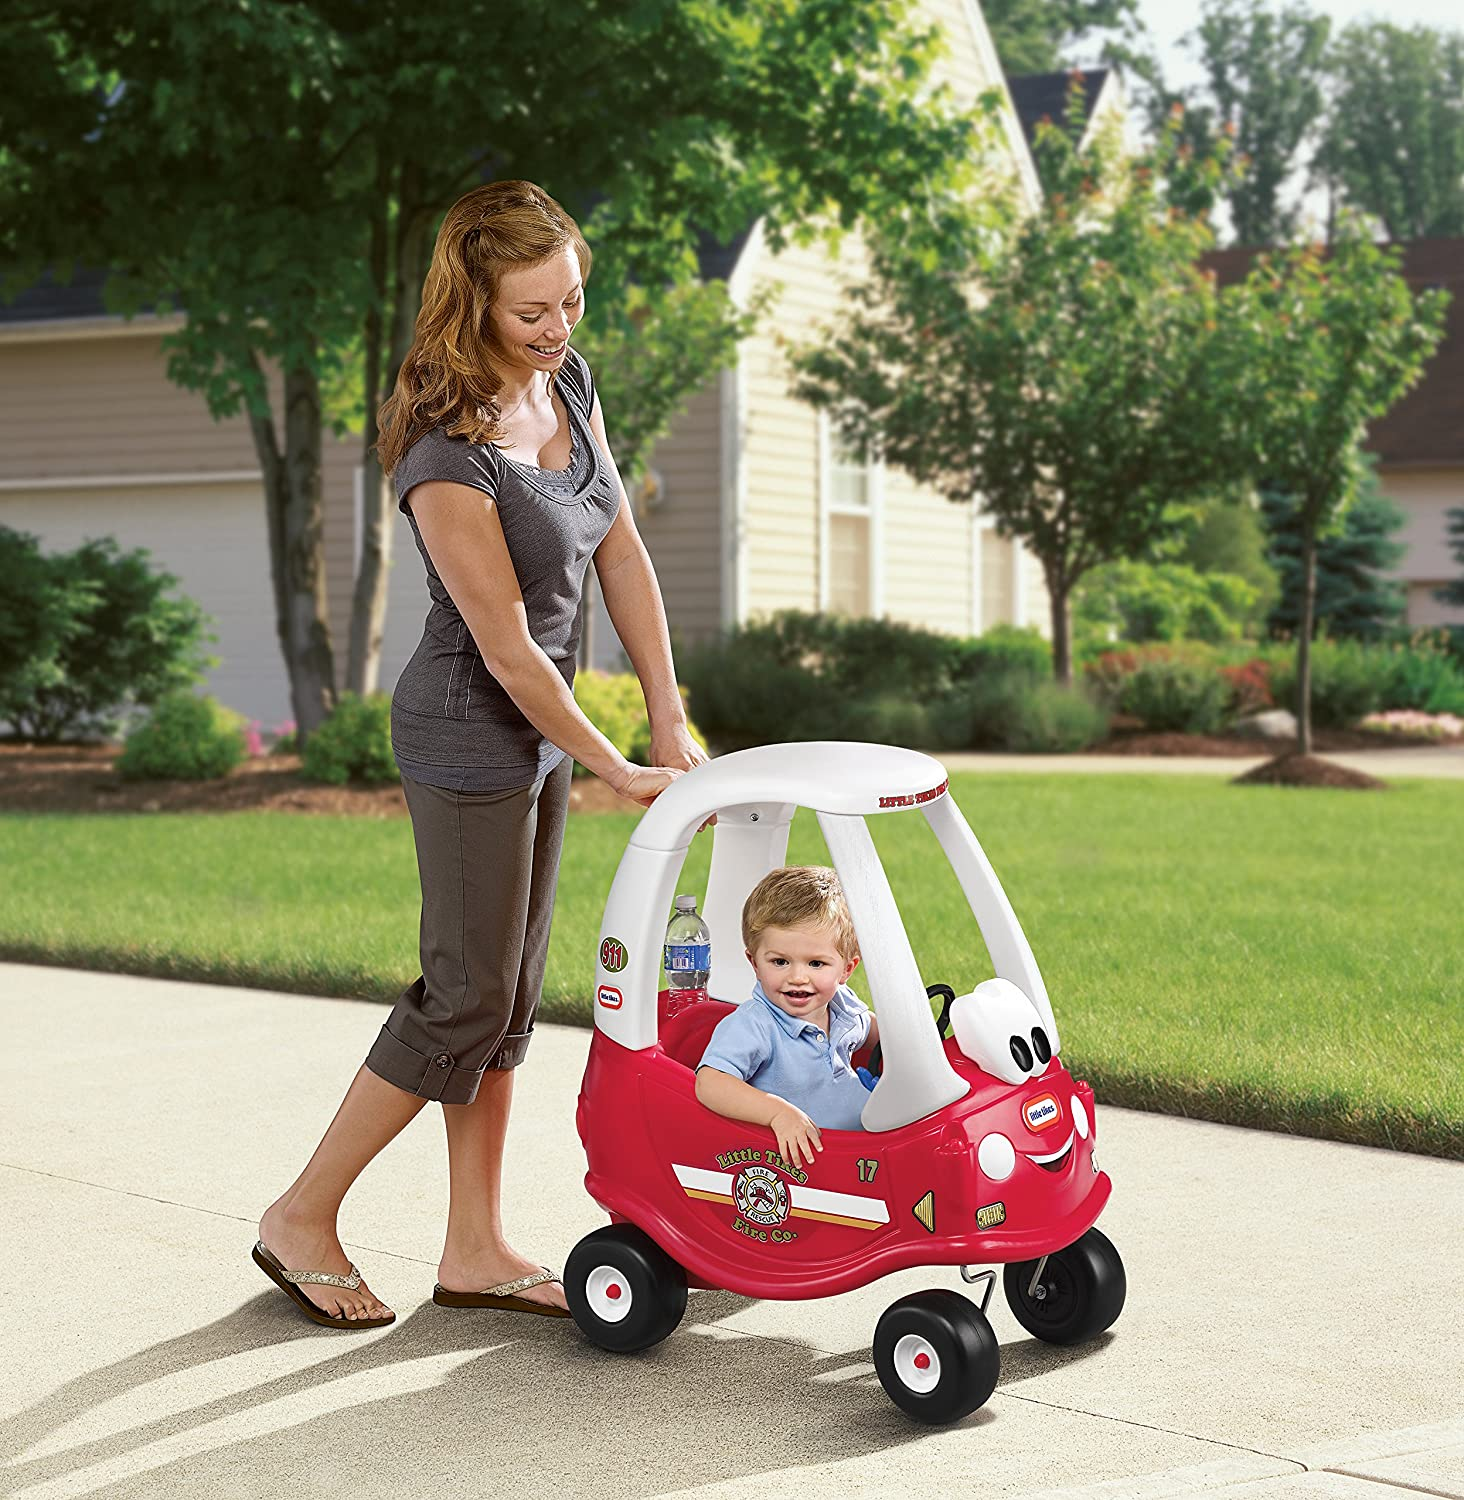 Little Tikes Fire and Rescue Cozy Coupe Ride-On